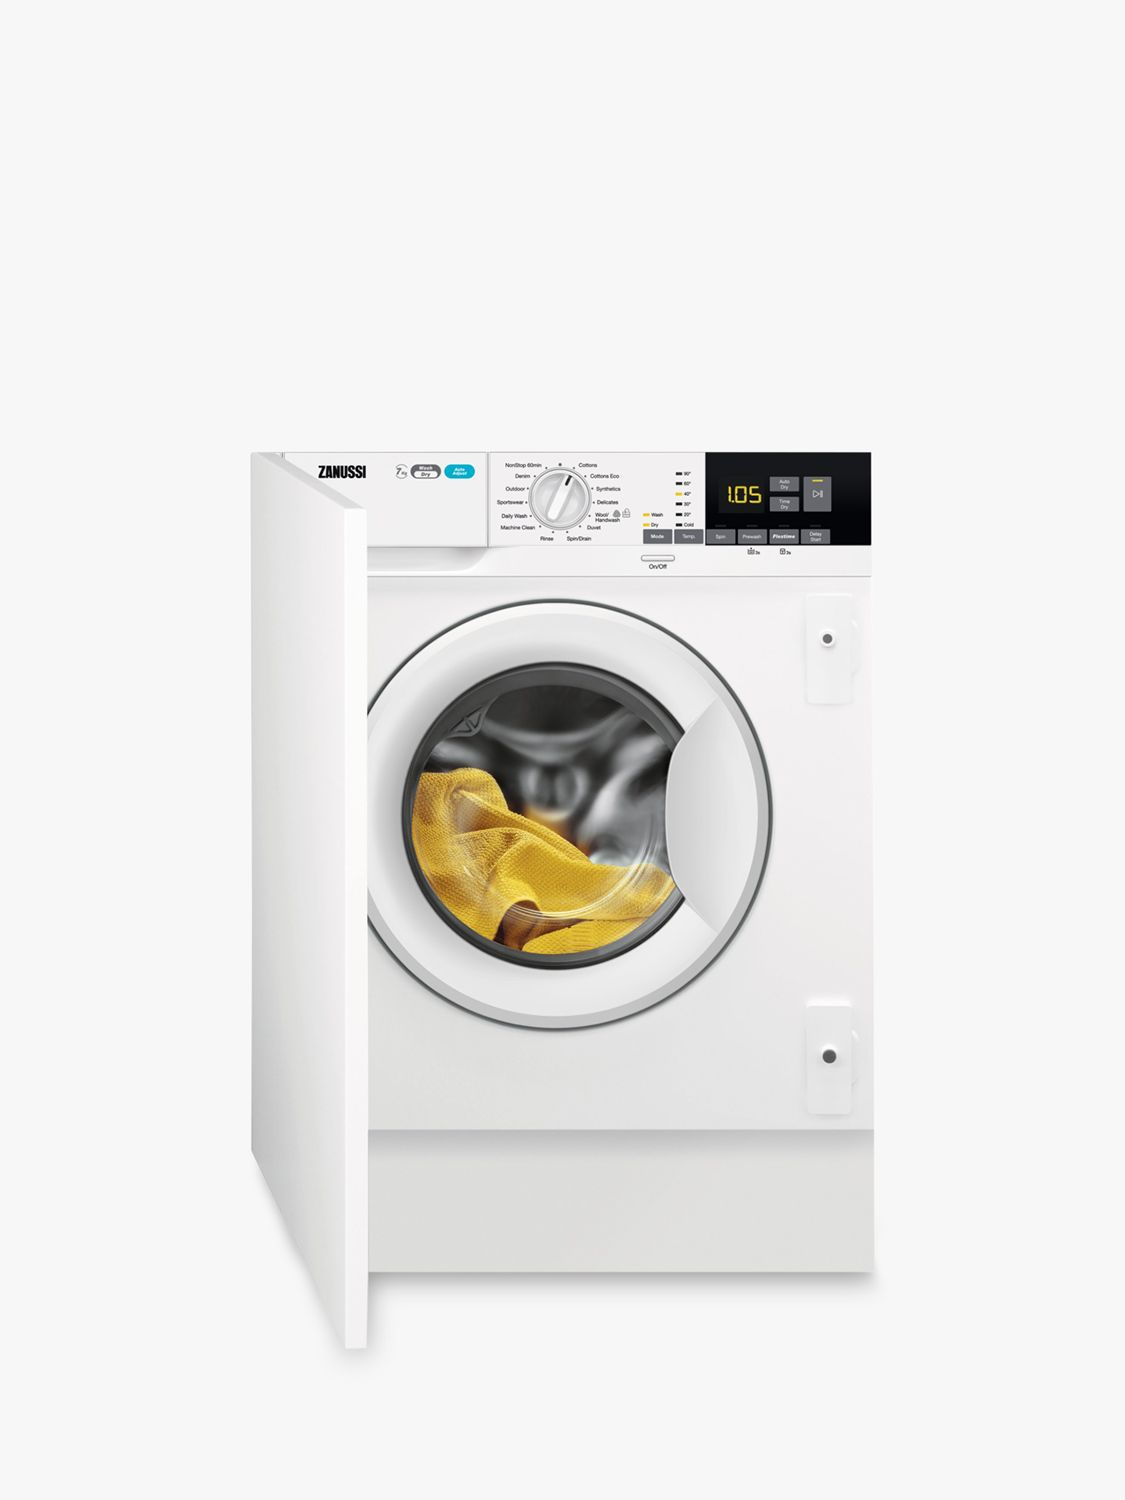 Zanussi Zanussi Z716WT83BI Integrated Washer Dryer, 7kg Wash/4kg Dry Load, A Energy Rating, 1600rpm Spin, White